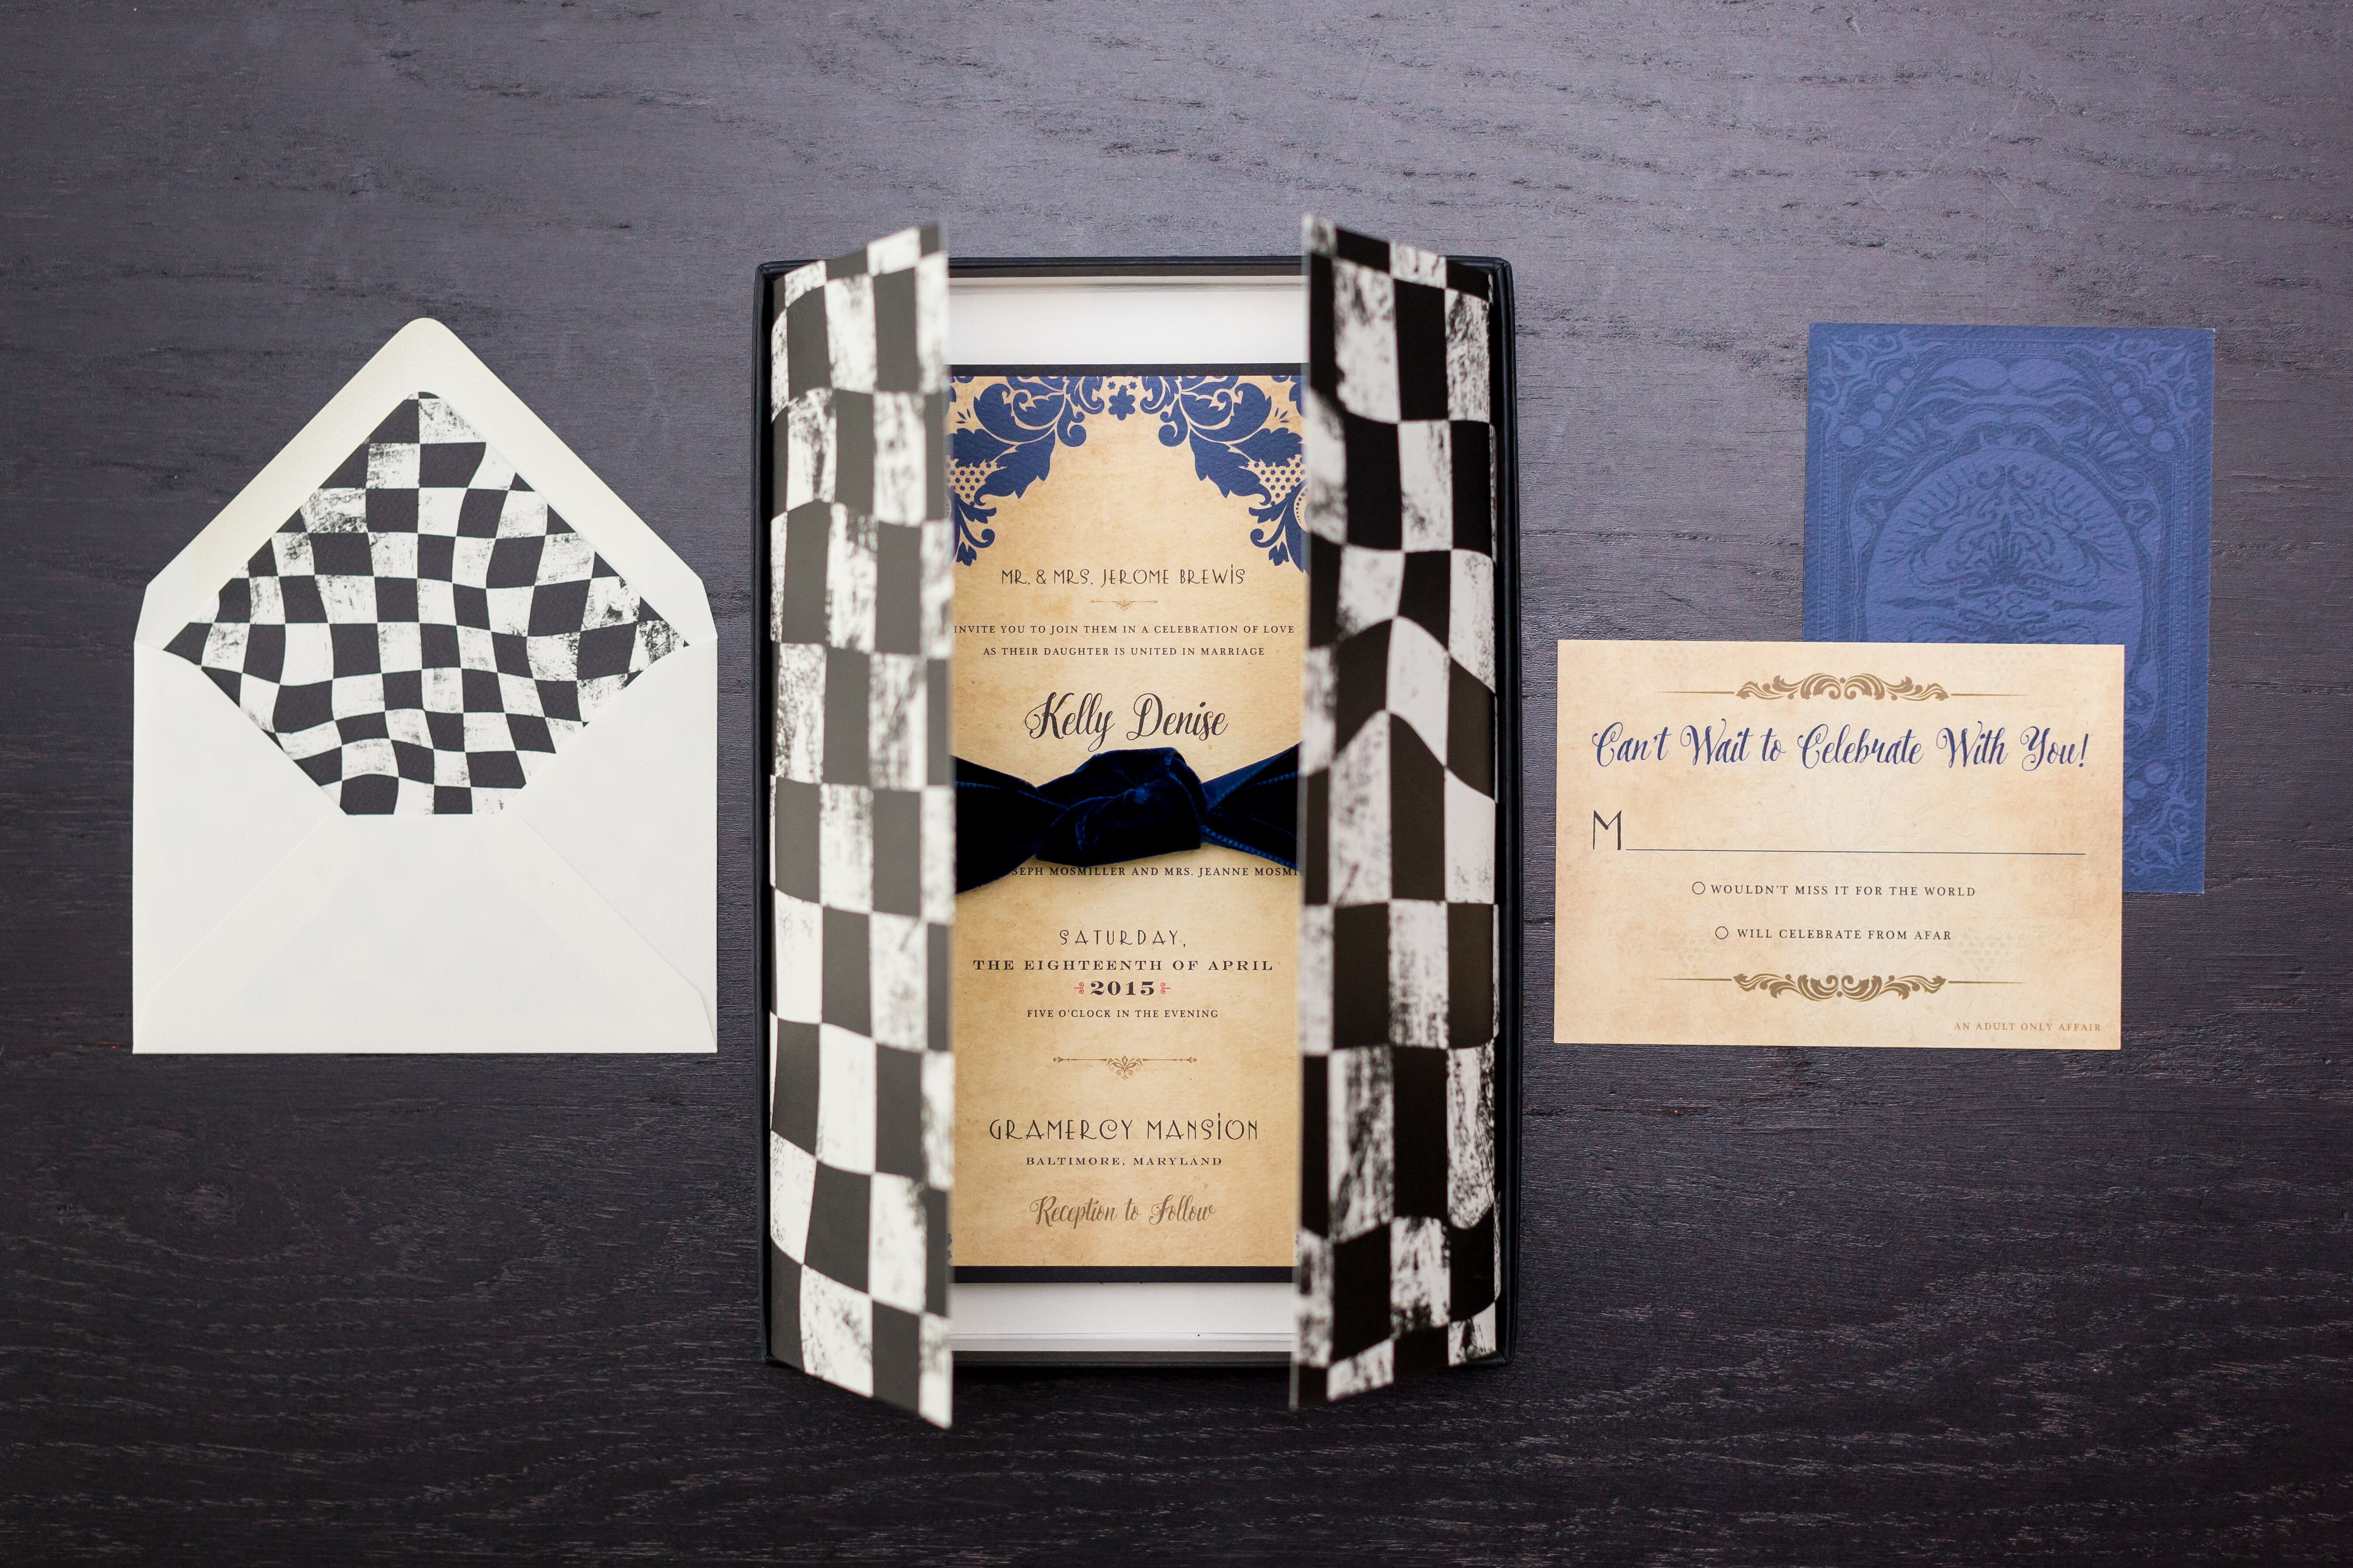 A Vibrant, Alice In Wonderland Themed Wedding at the Gramercy ...